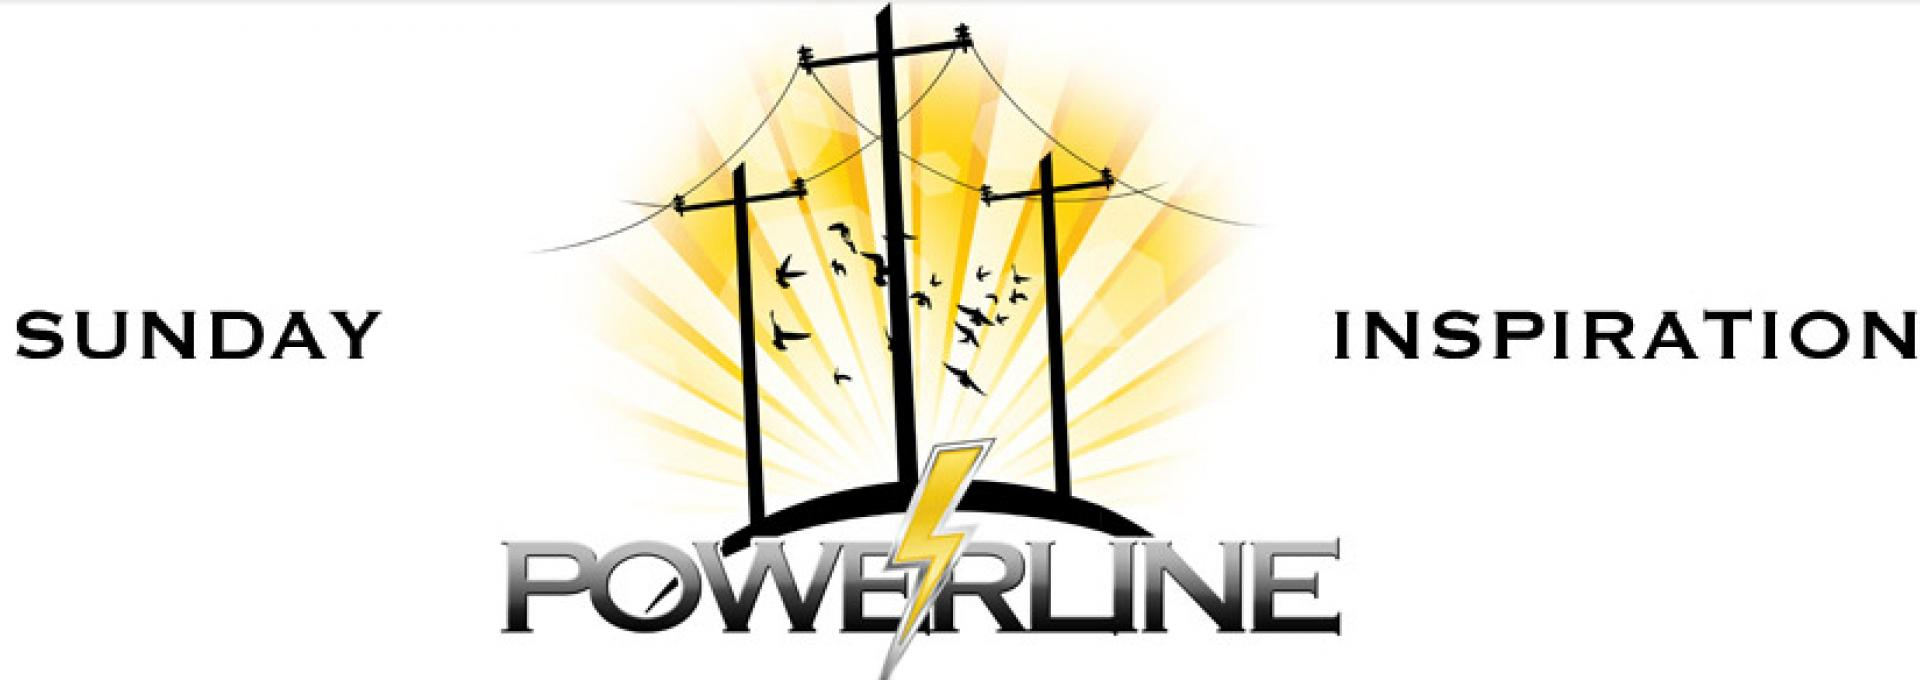 POWERLINE with Brother Jon Rivers hero